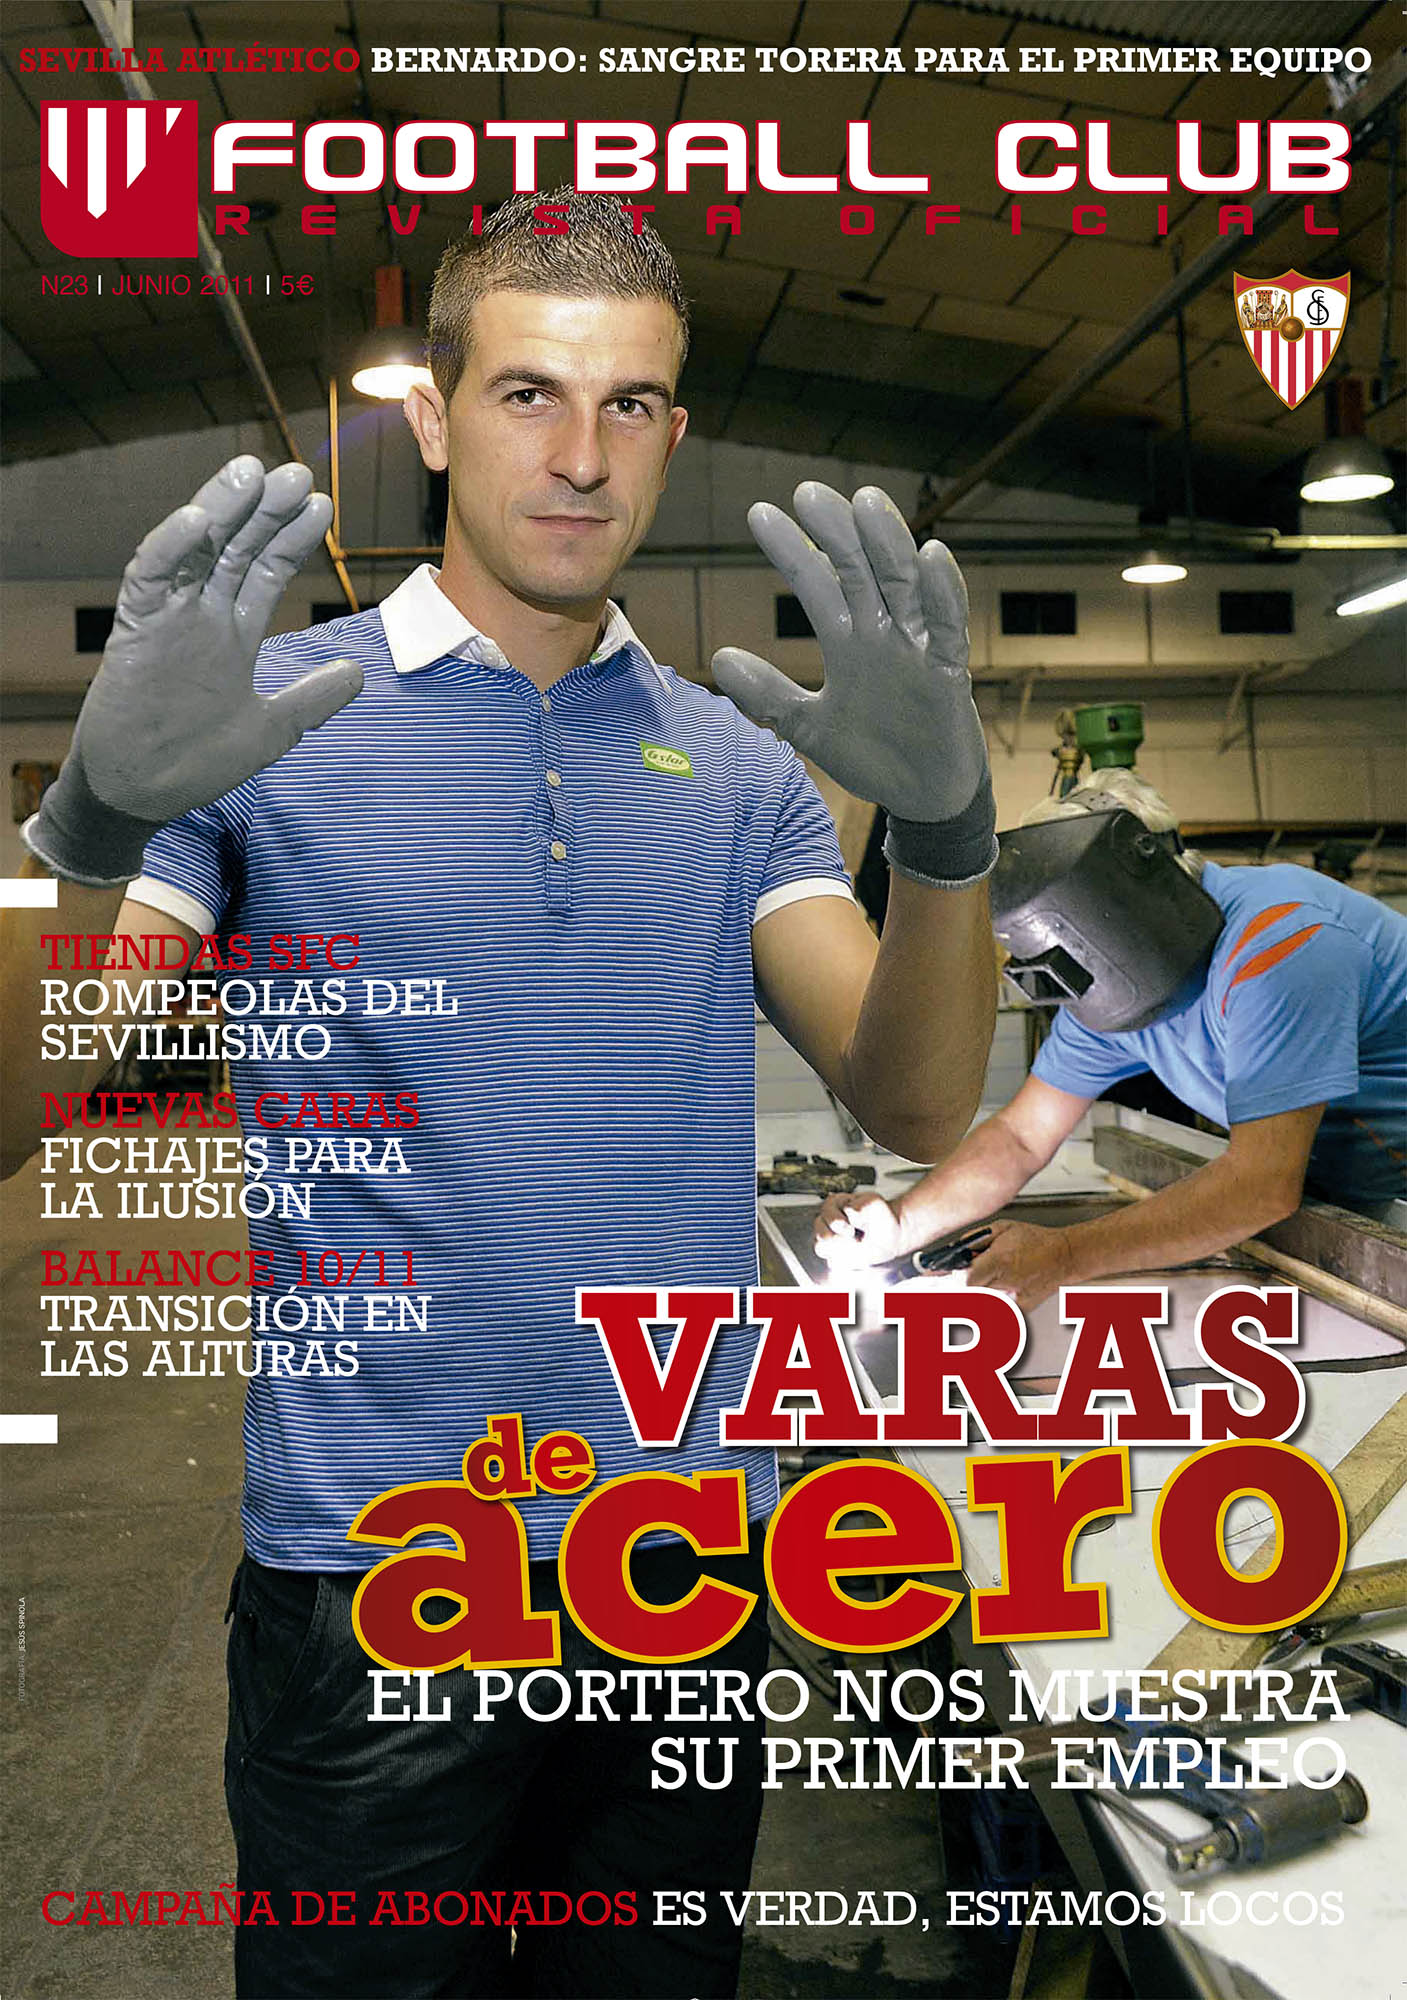 Varas de acero (Javi Varas) | Football Club | jun 2011